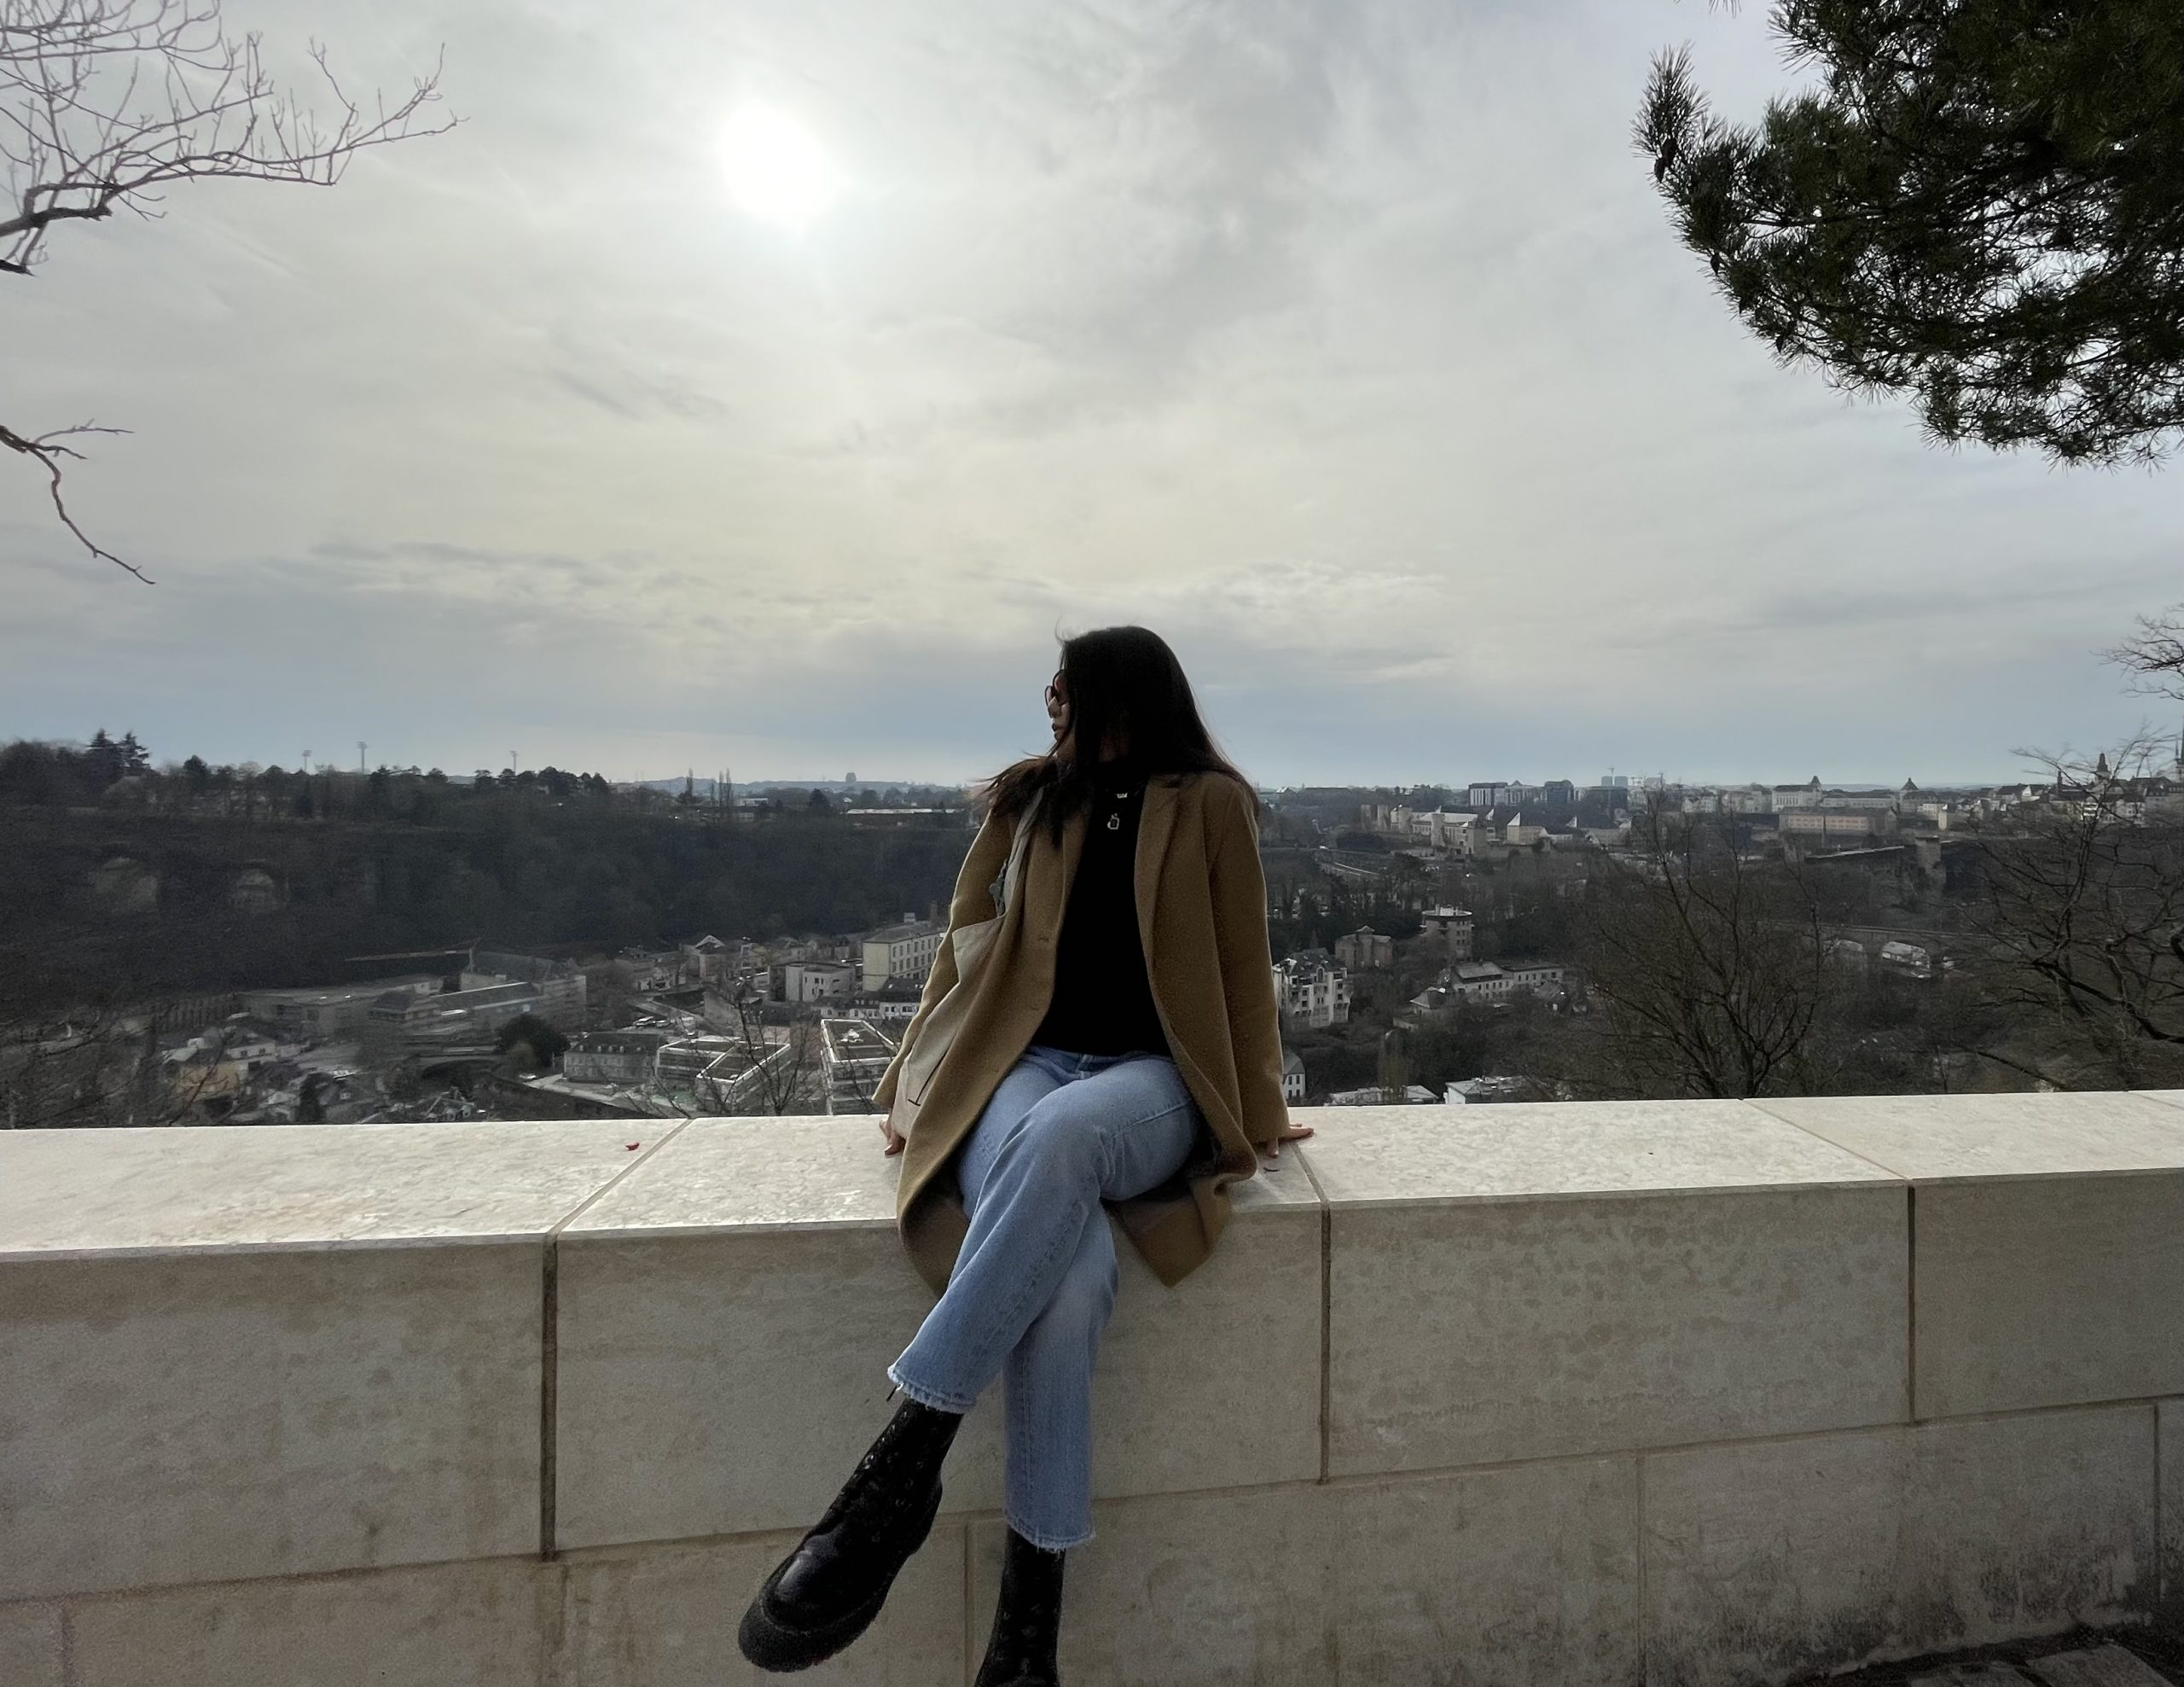 woman sits on wall overlooking city during daytime